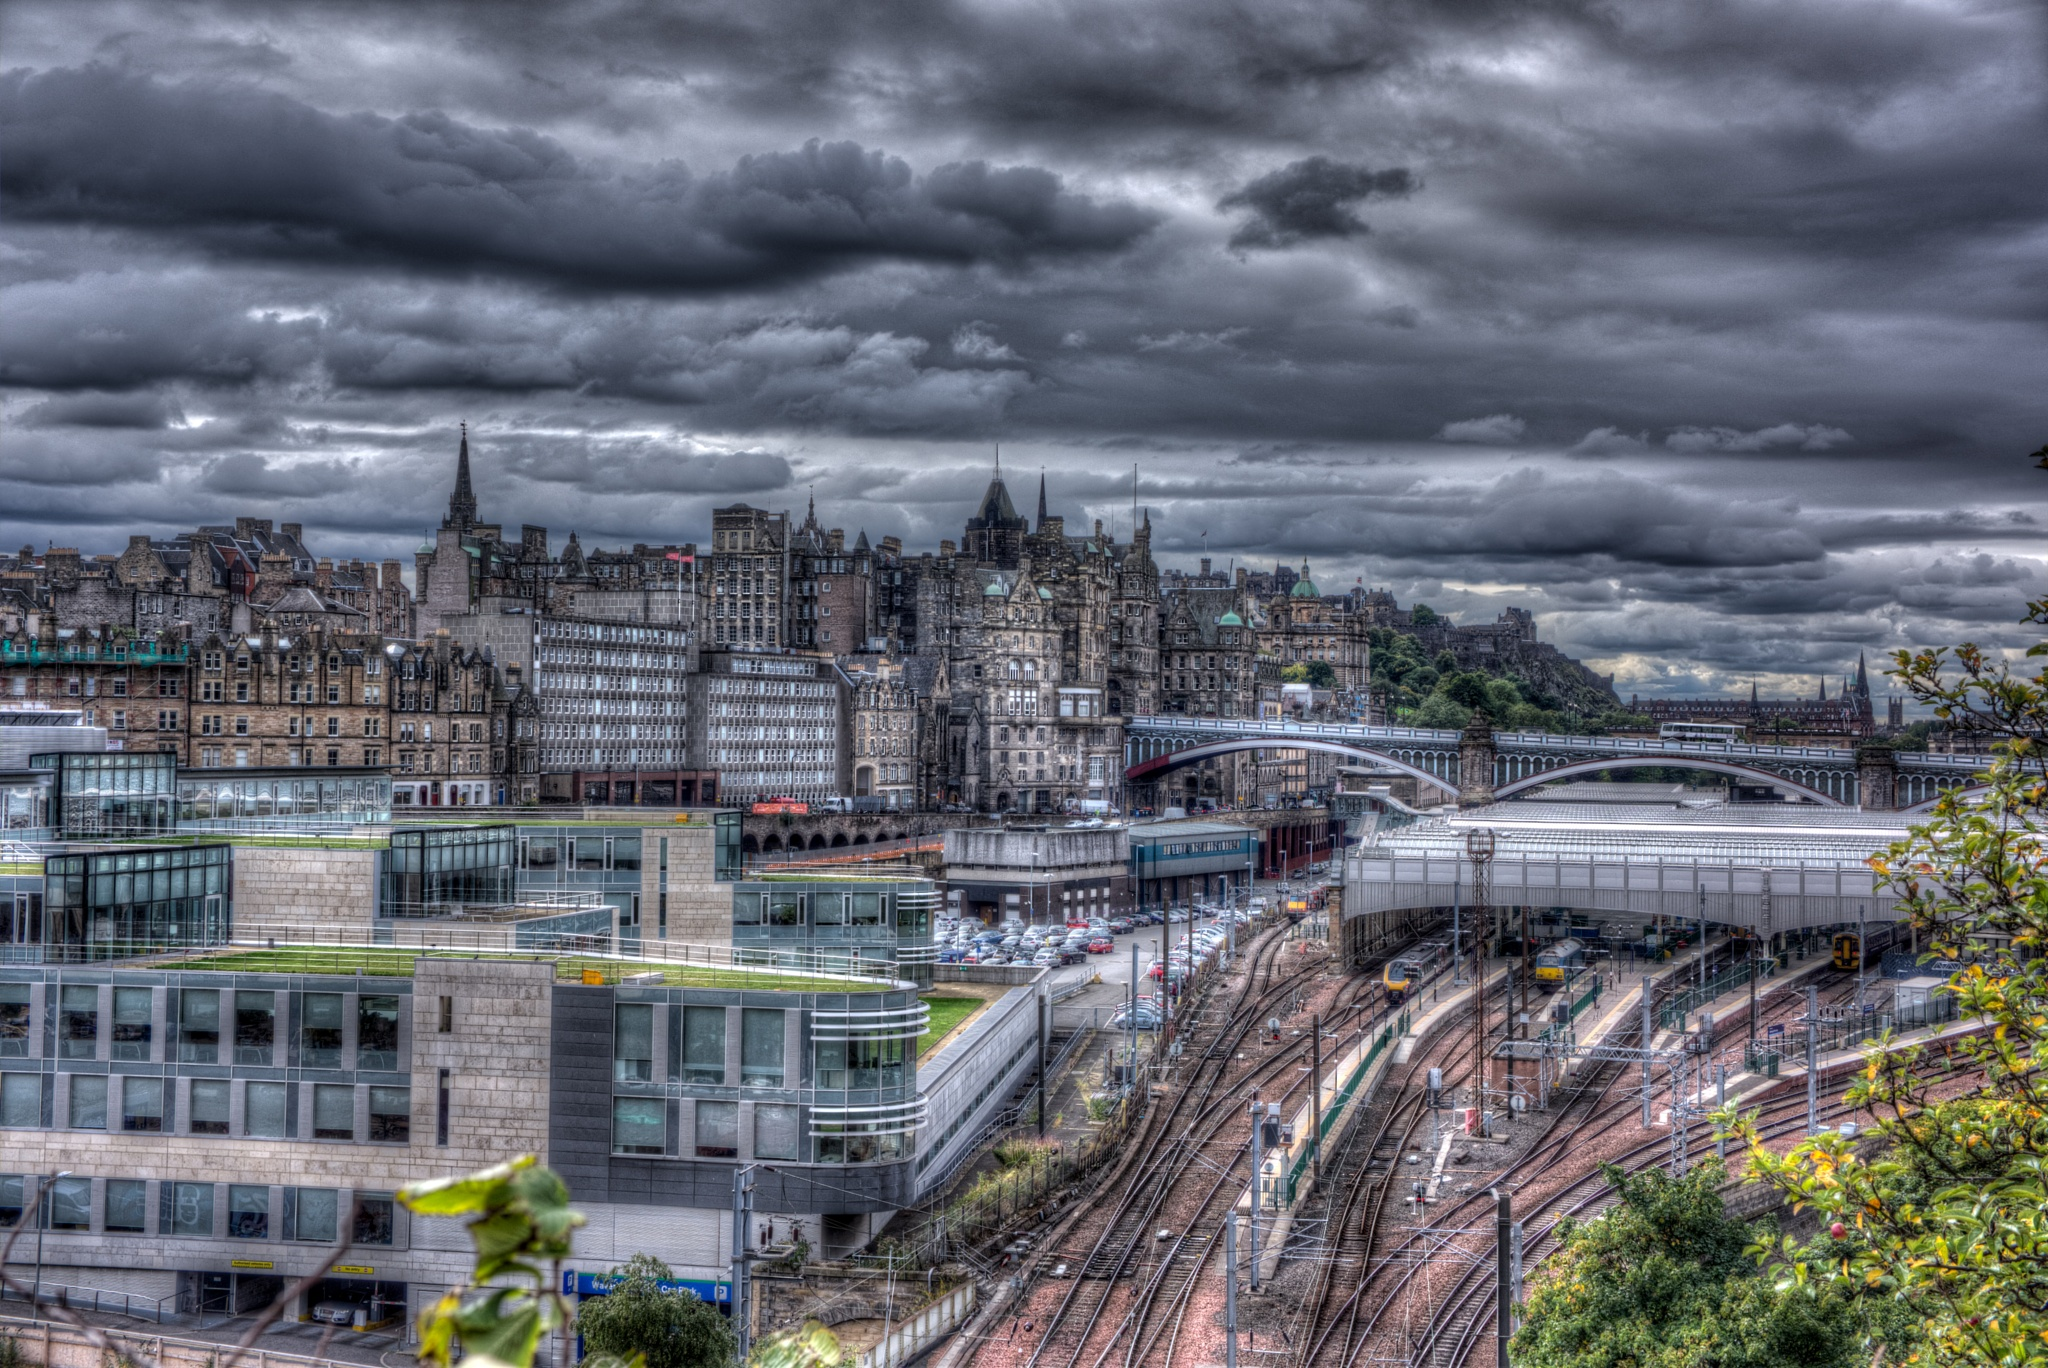 Waverley Station and Edinburgh's Old Town by lawson mcculloch